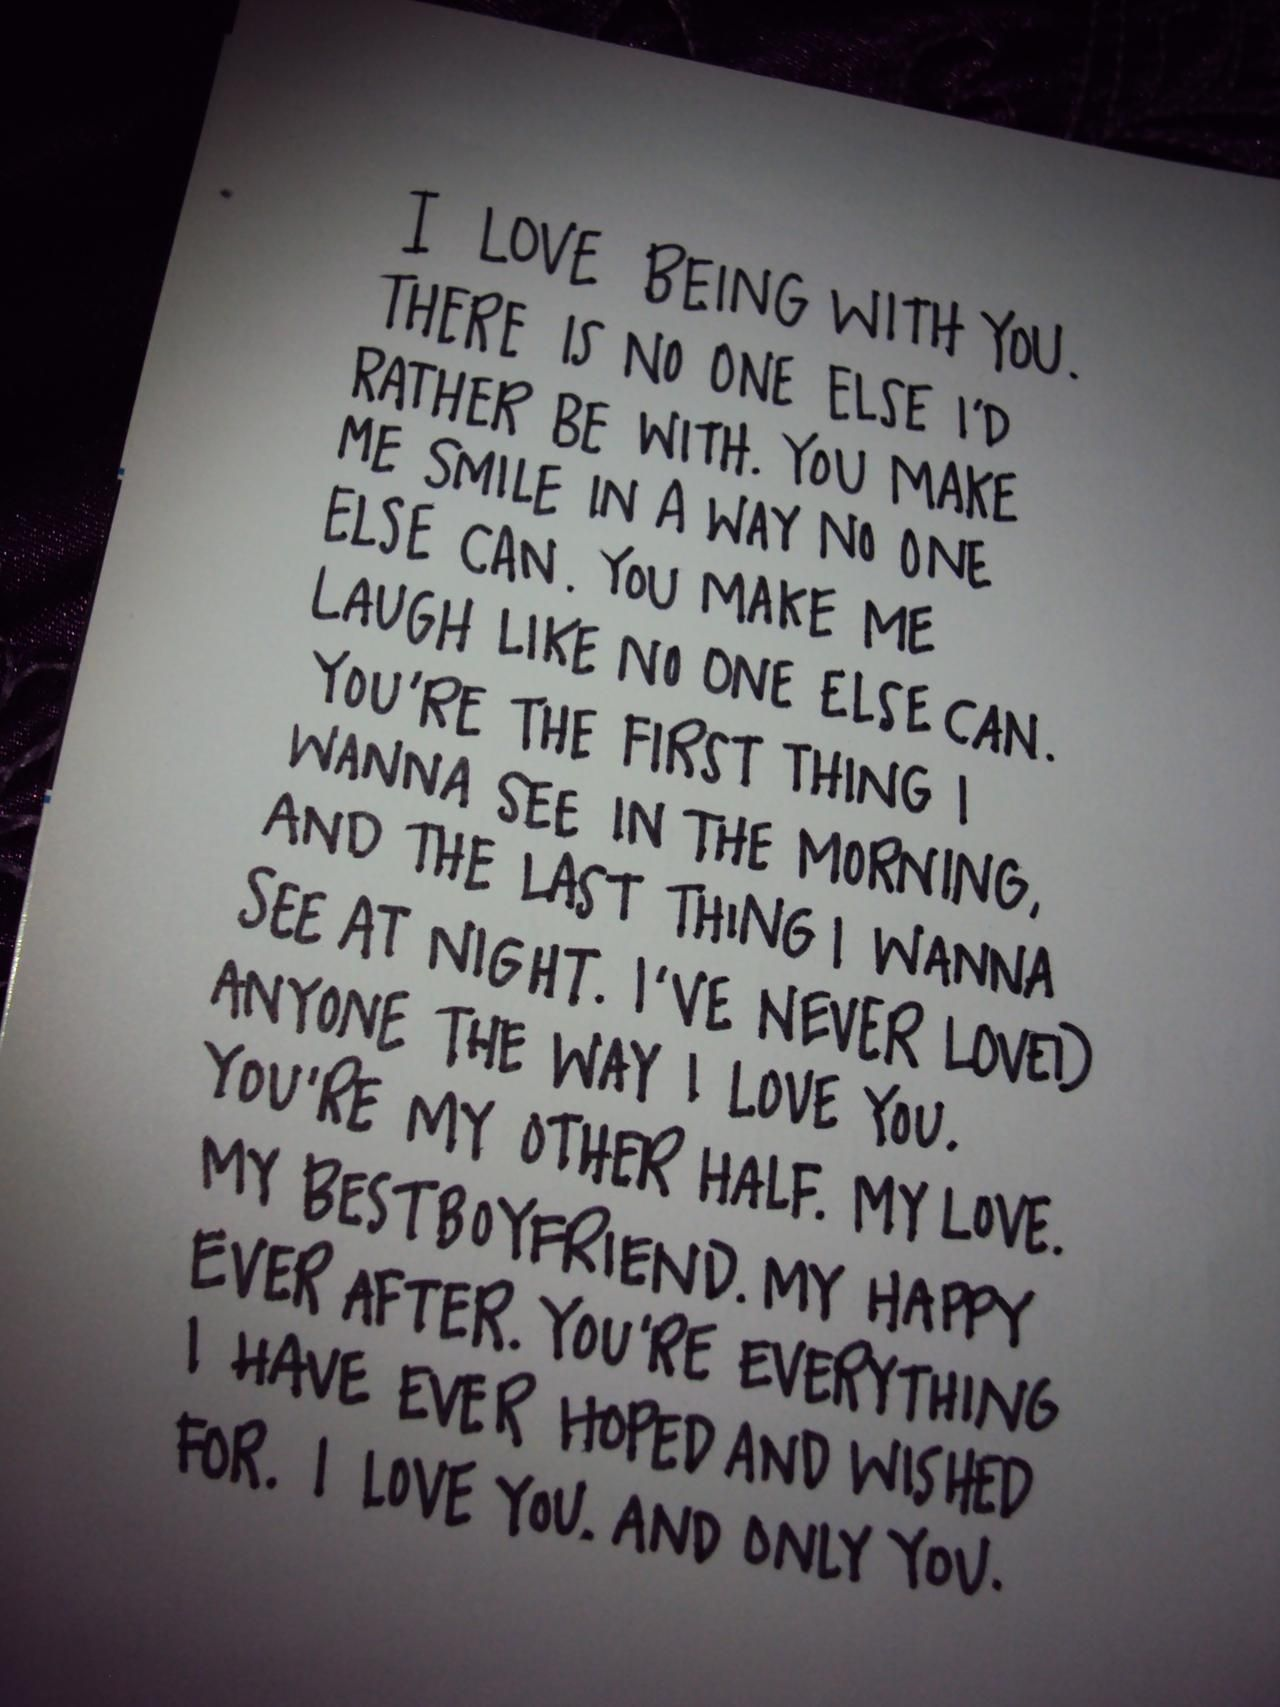 Lovely Feel Like This With My Boyfriend Love Him So Much Such A Cute Couple Quote  Wrote This Down And Gave It To Him As A Love Letter, Never Seen Him So  Happy:)) ...